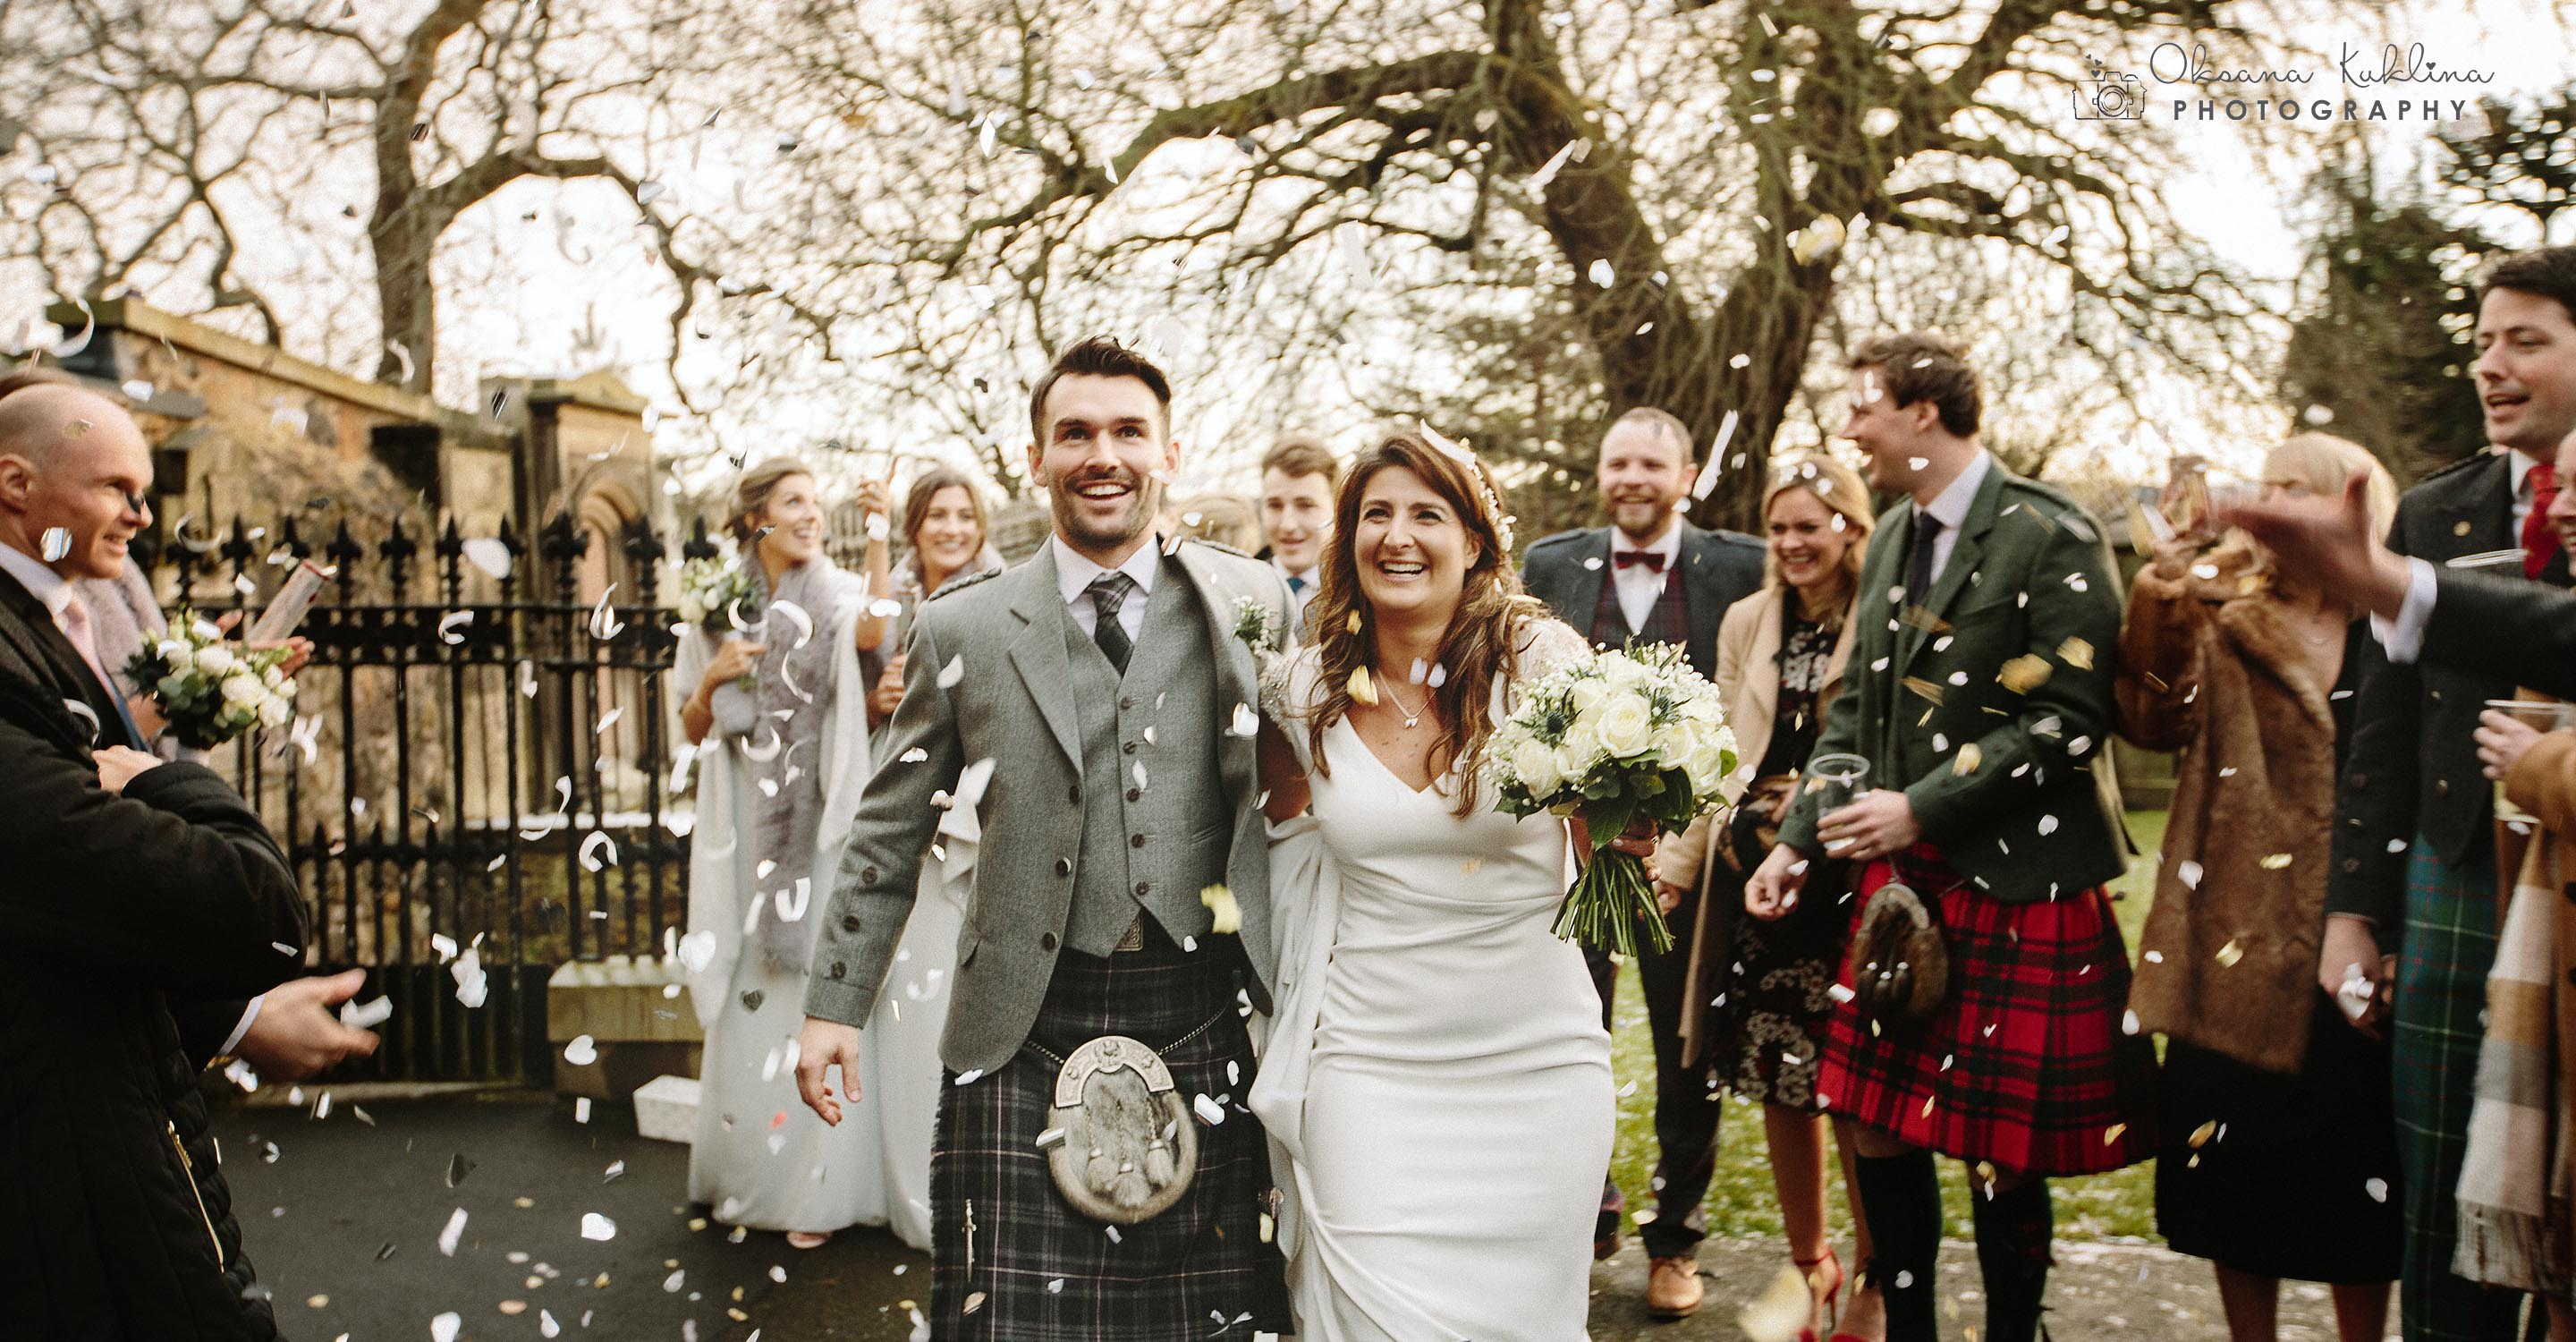 Balmoral Edinburgh Wedding Photographer - Balmoral Hotel Scottish winter wedding